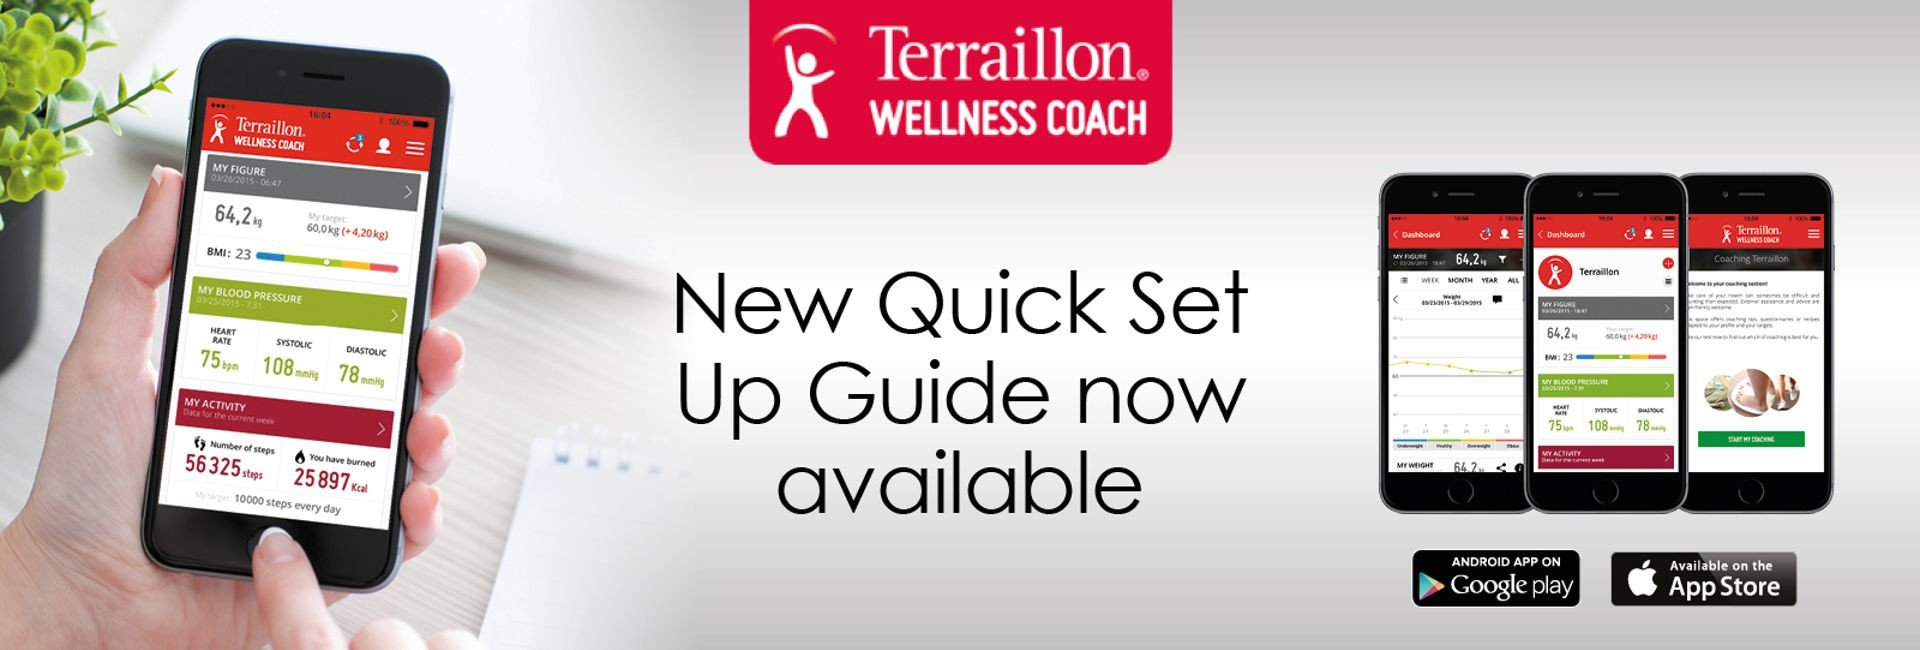 Terraillon Wellness Coach